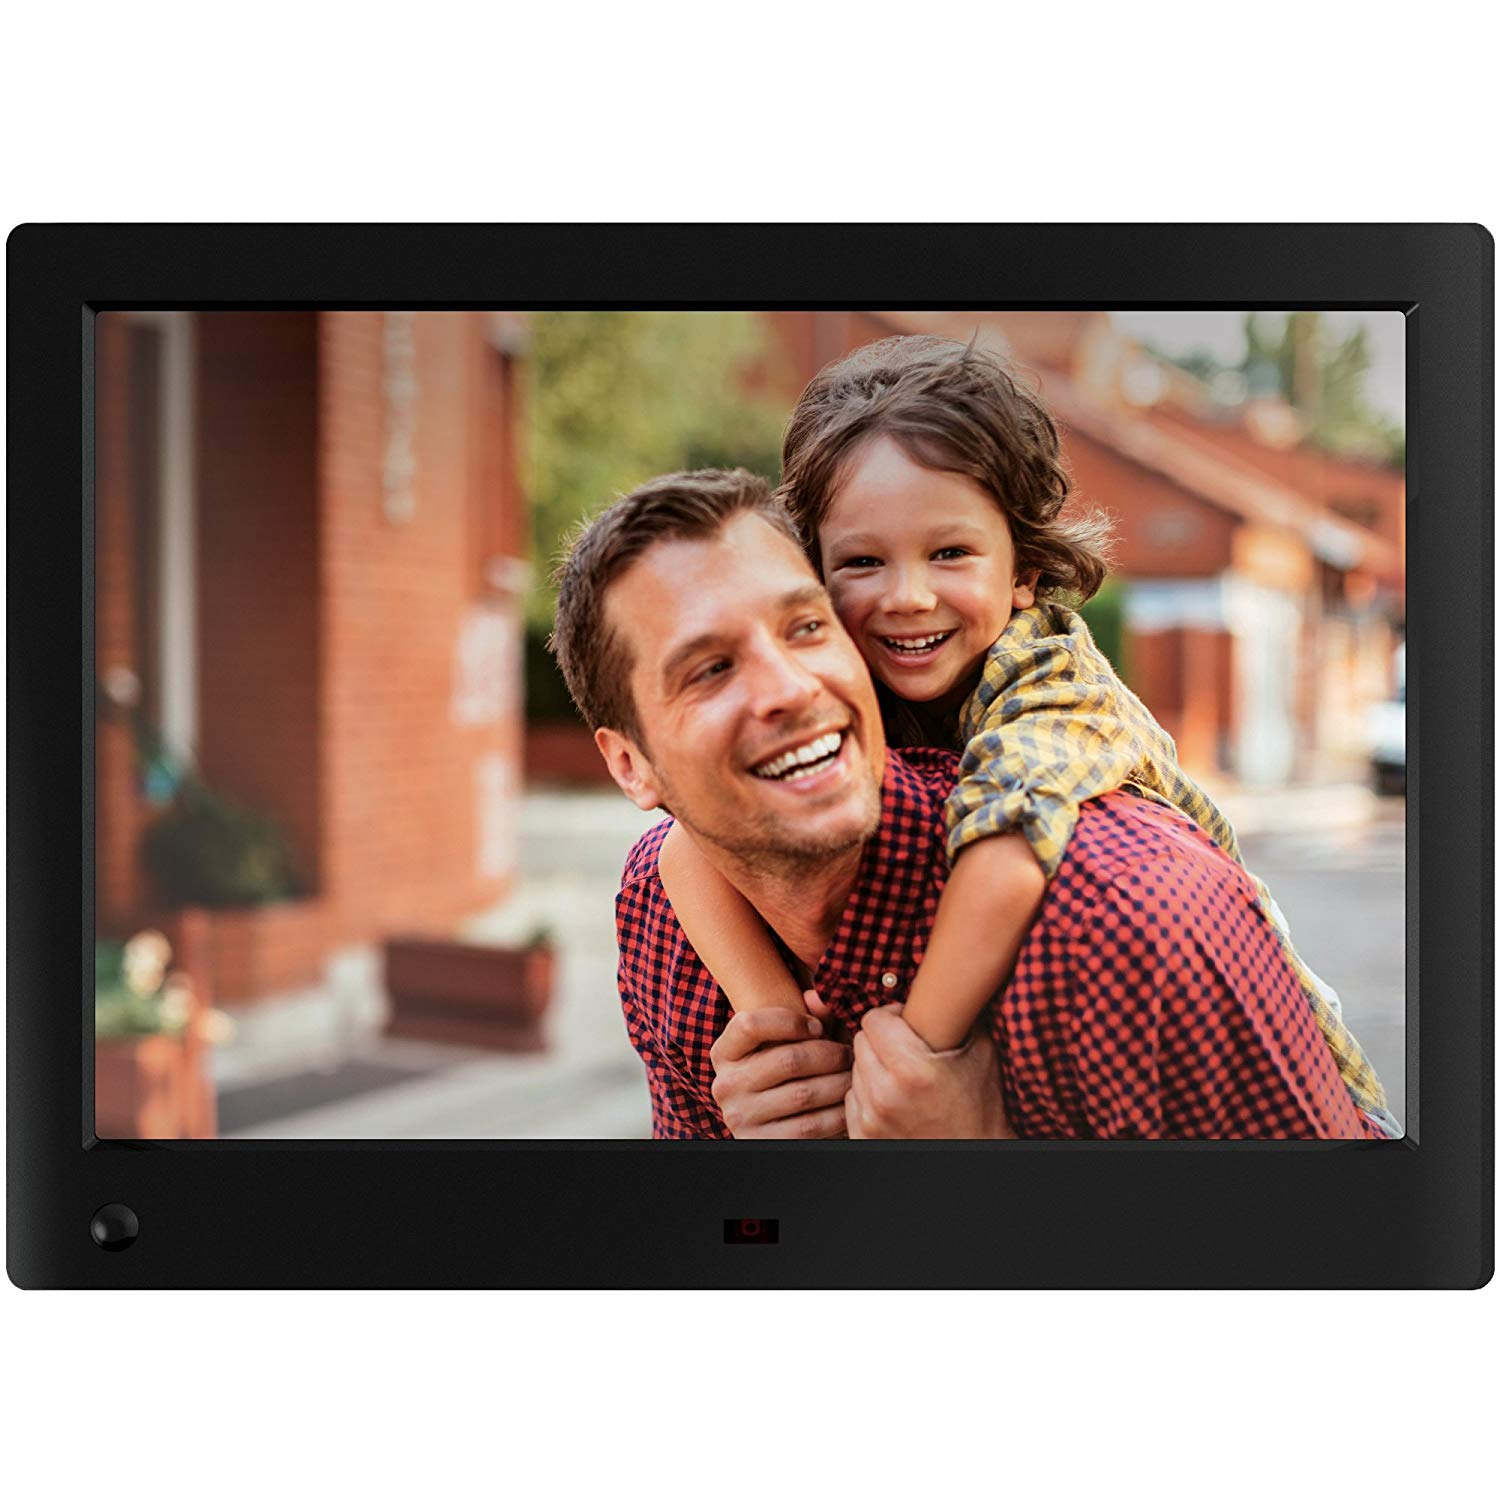 Best Digital Photo Frames 2019 - Best Digital Picture Frame With Wifi